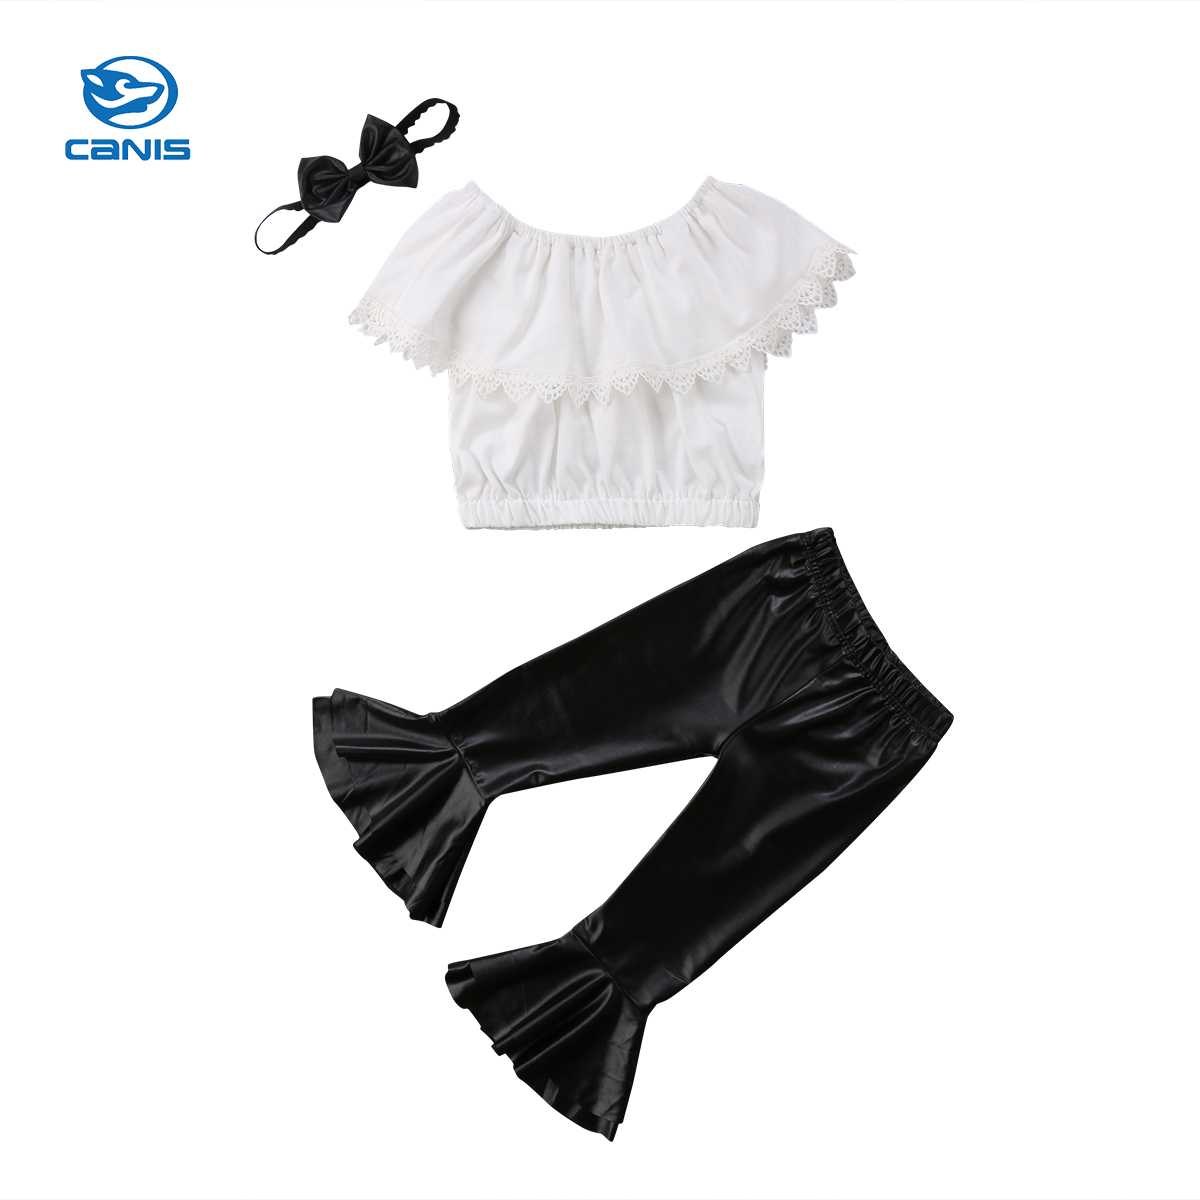 2018 Brand New Toddler Infant Kid Baby Girl Clothes Set Strapless Tops PU Leather Flare Pant Headband 3Pcs Summer Ruffled Outfit 3pcs outfit infantil girls clothes toddler baby girl plaid ruffled tops kids girls denim shorts cute headband summer outfits set